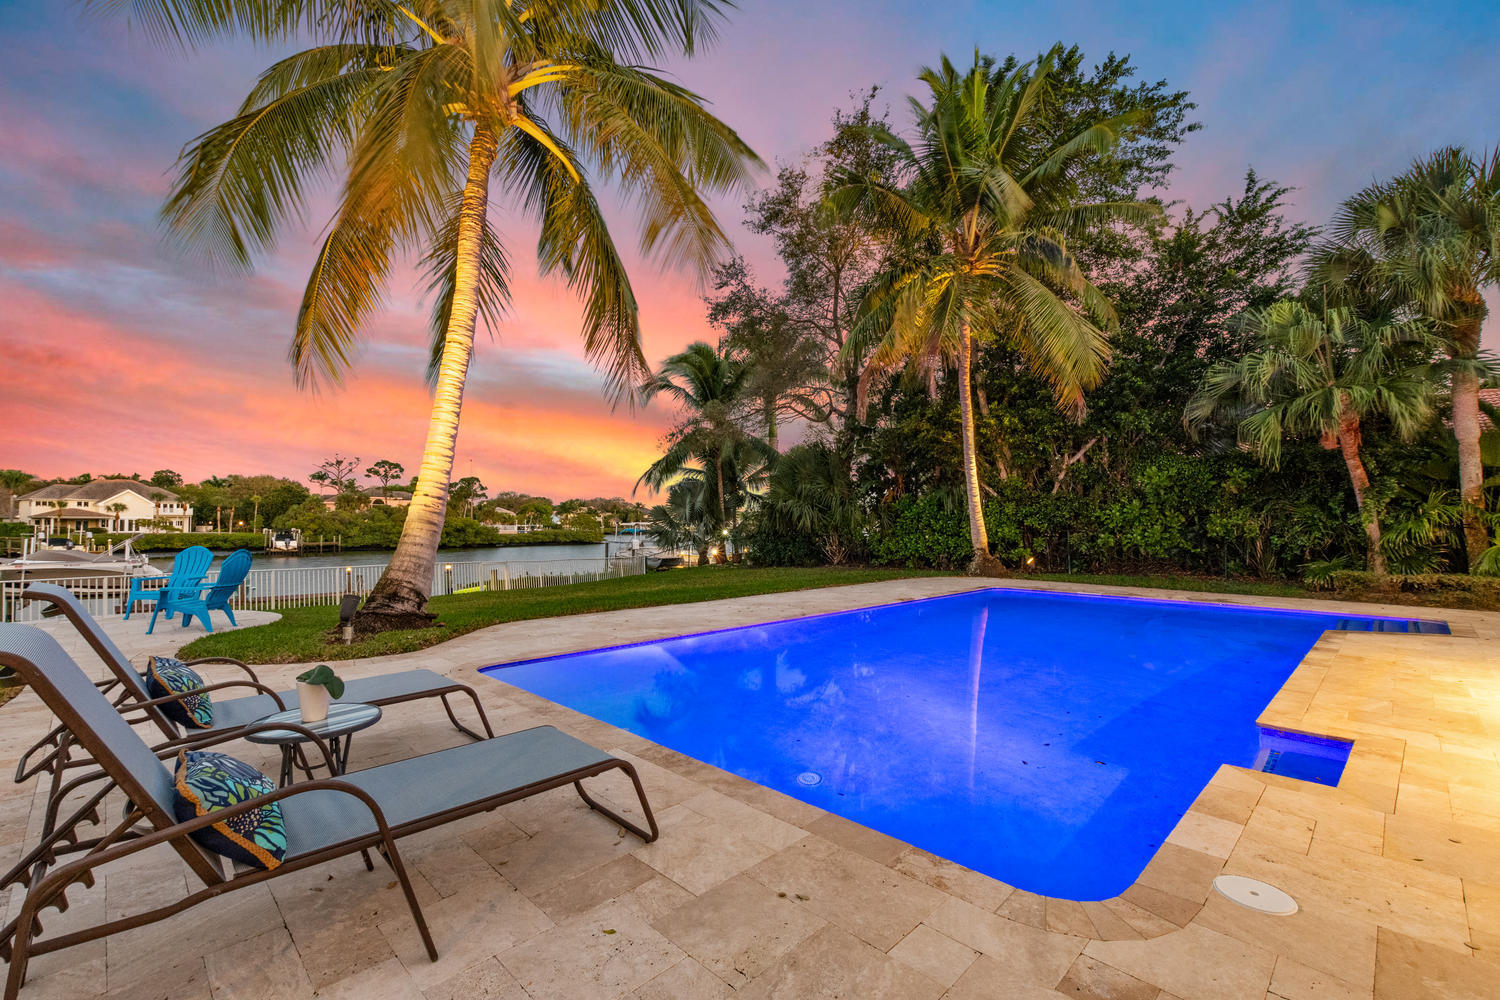 New Home for sale at 18420 Heritage Drive in Tequesta